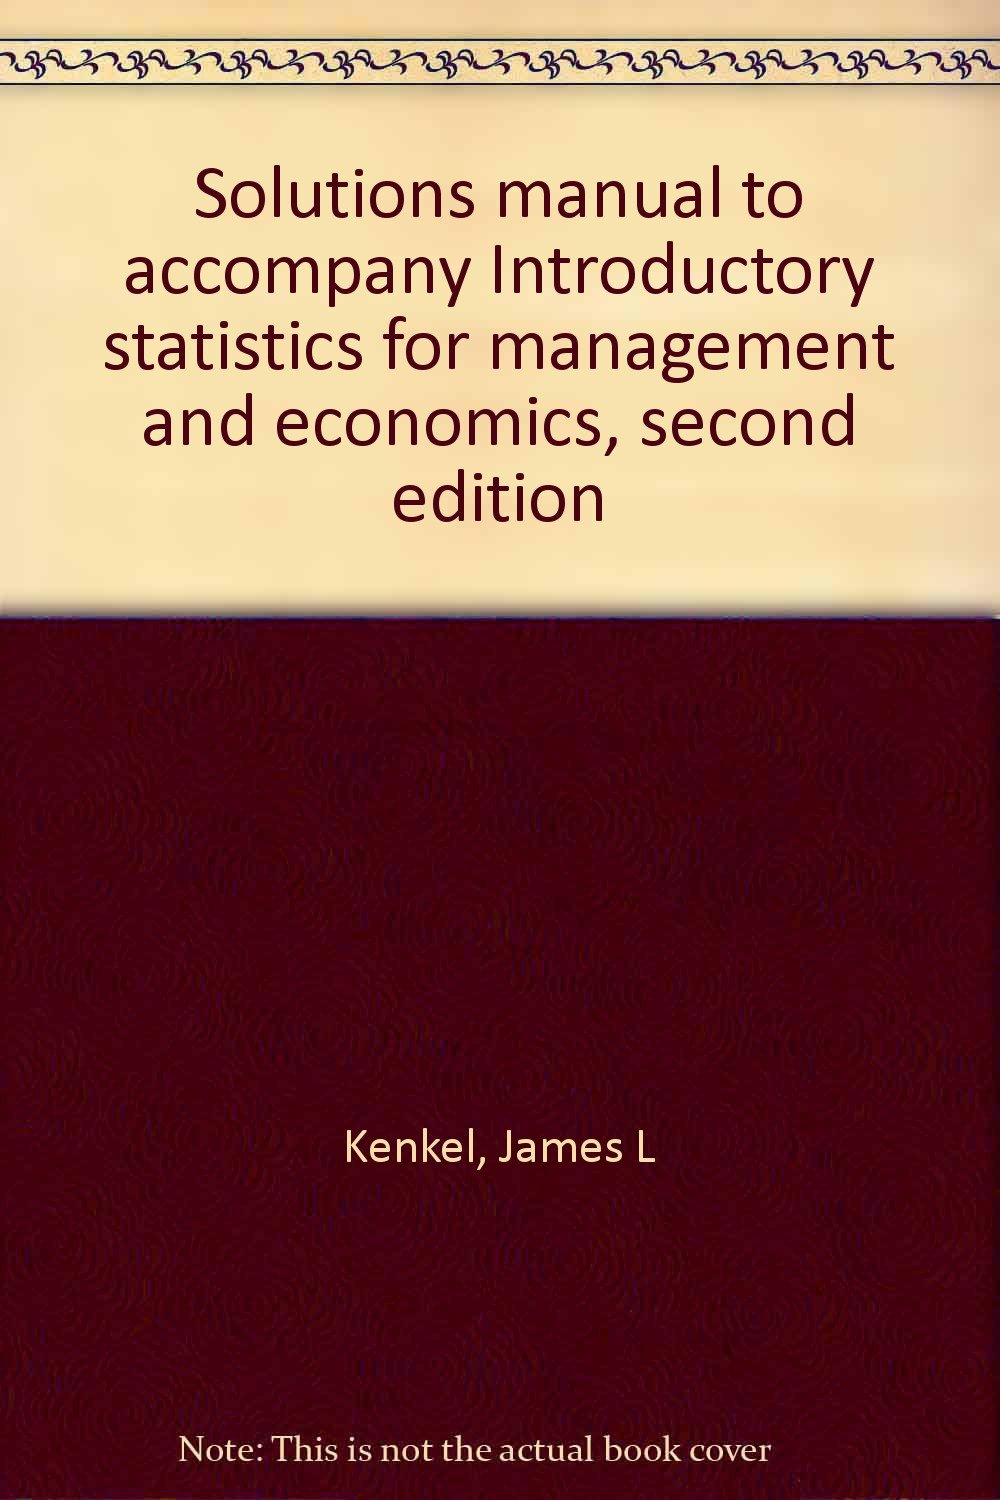 Solutions manual to accompany Introductory statistics for management and  economics, second edition: James L Kenkel: 9780871504692: Amazon.com: Books